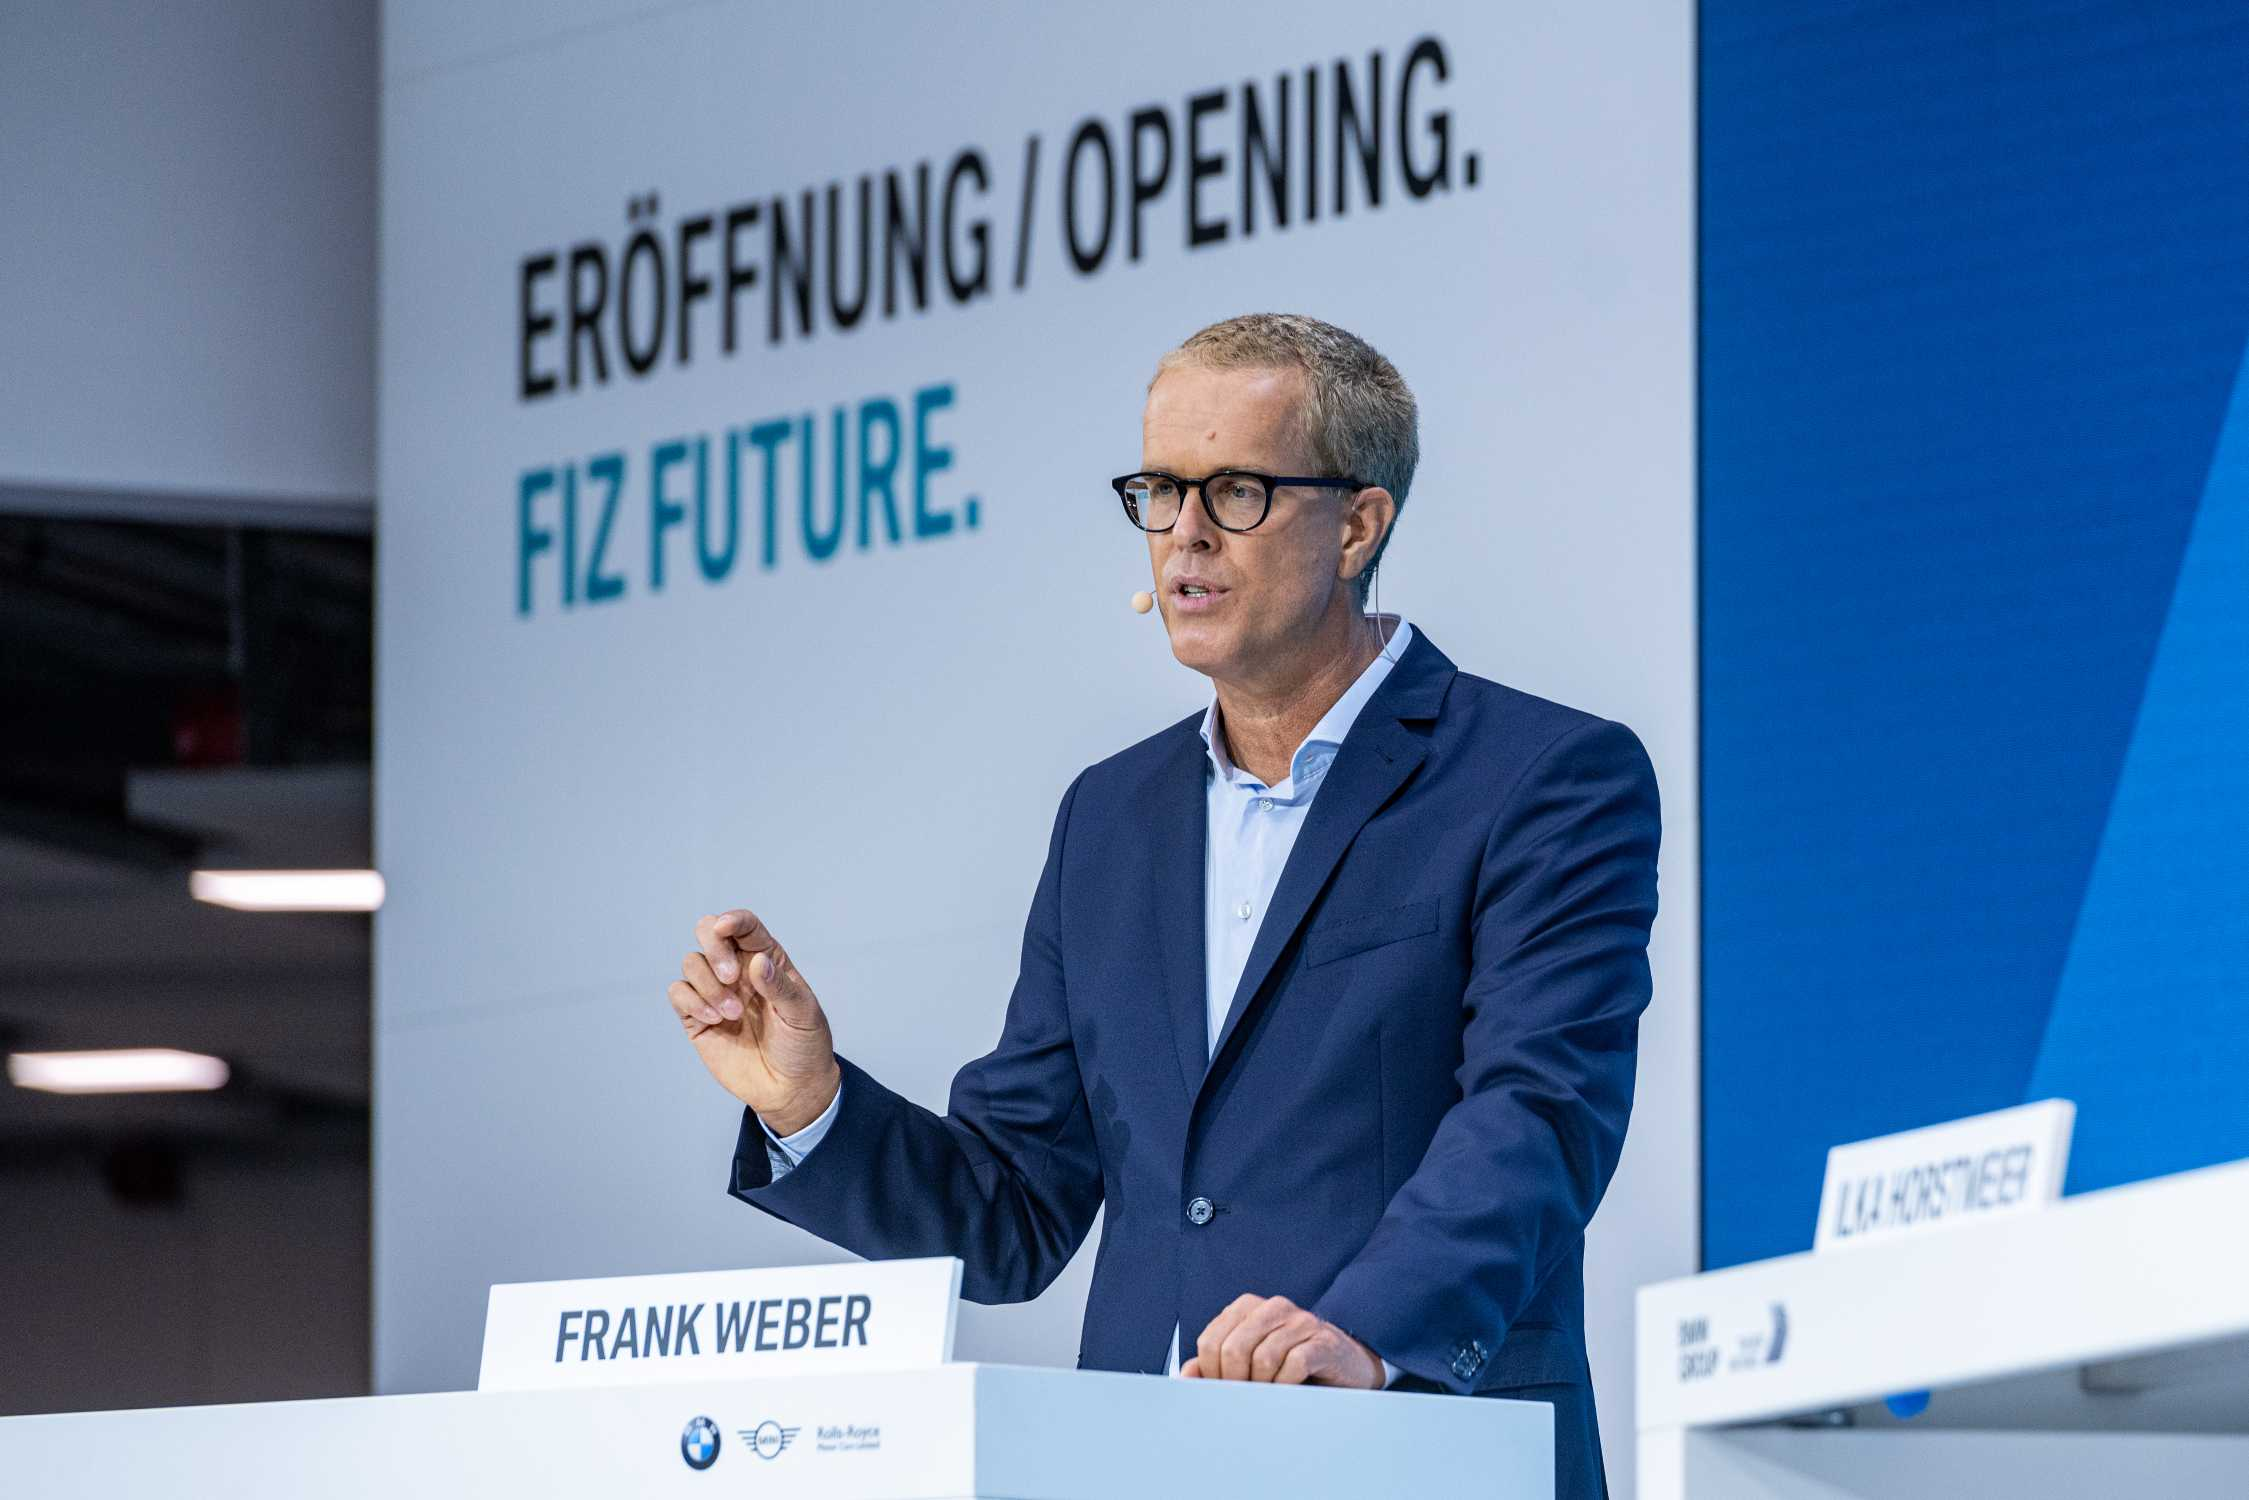 BMW Group FIZ Future: Opening Projekthaus Nord in Munich on 25th September 2020. Frank Weber, Member of the Board of Management of BMW AG, Development (09/2020).